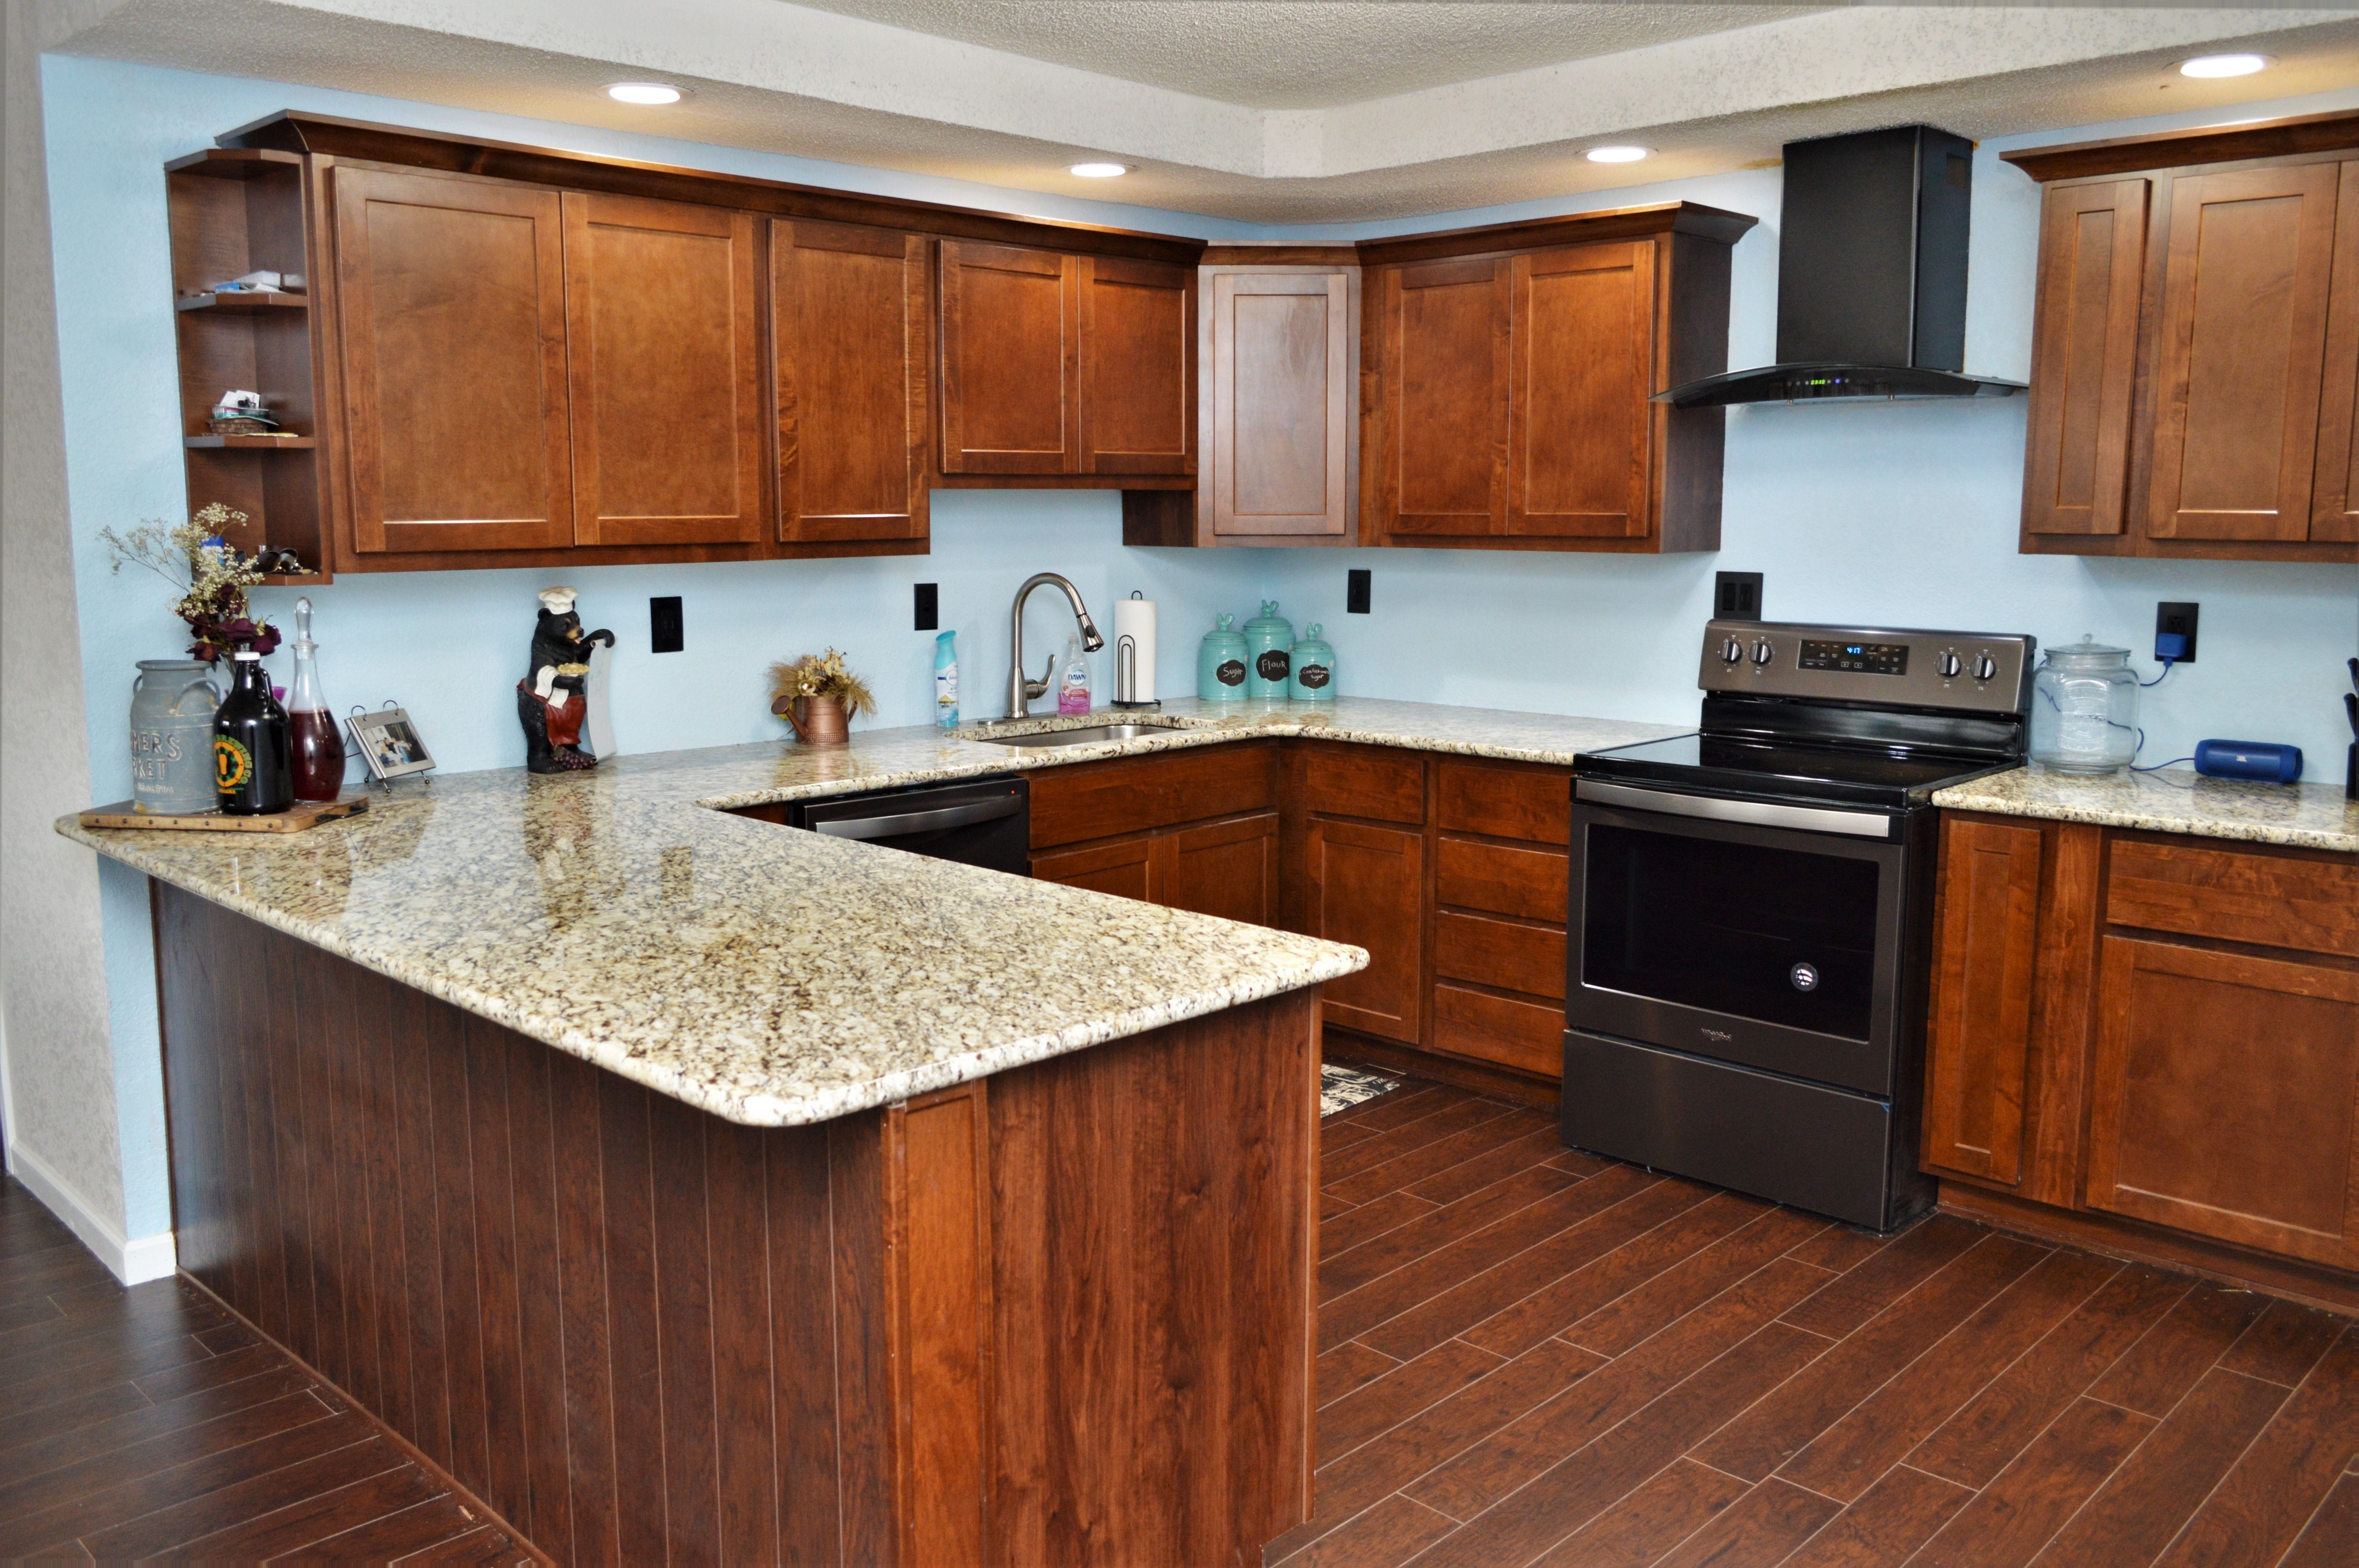 Bailey's Cabinets, Granite counter top, Bullnose edge ... on Best Granite Color For Maple Cabinets  id=75789